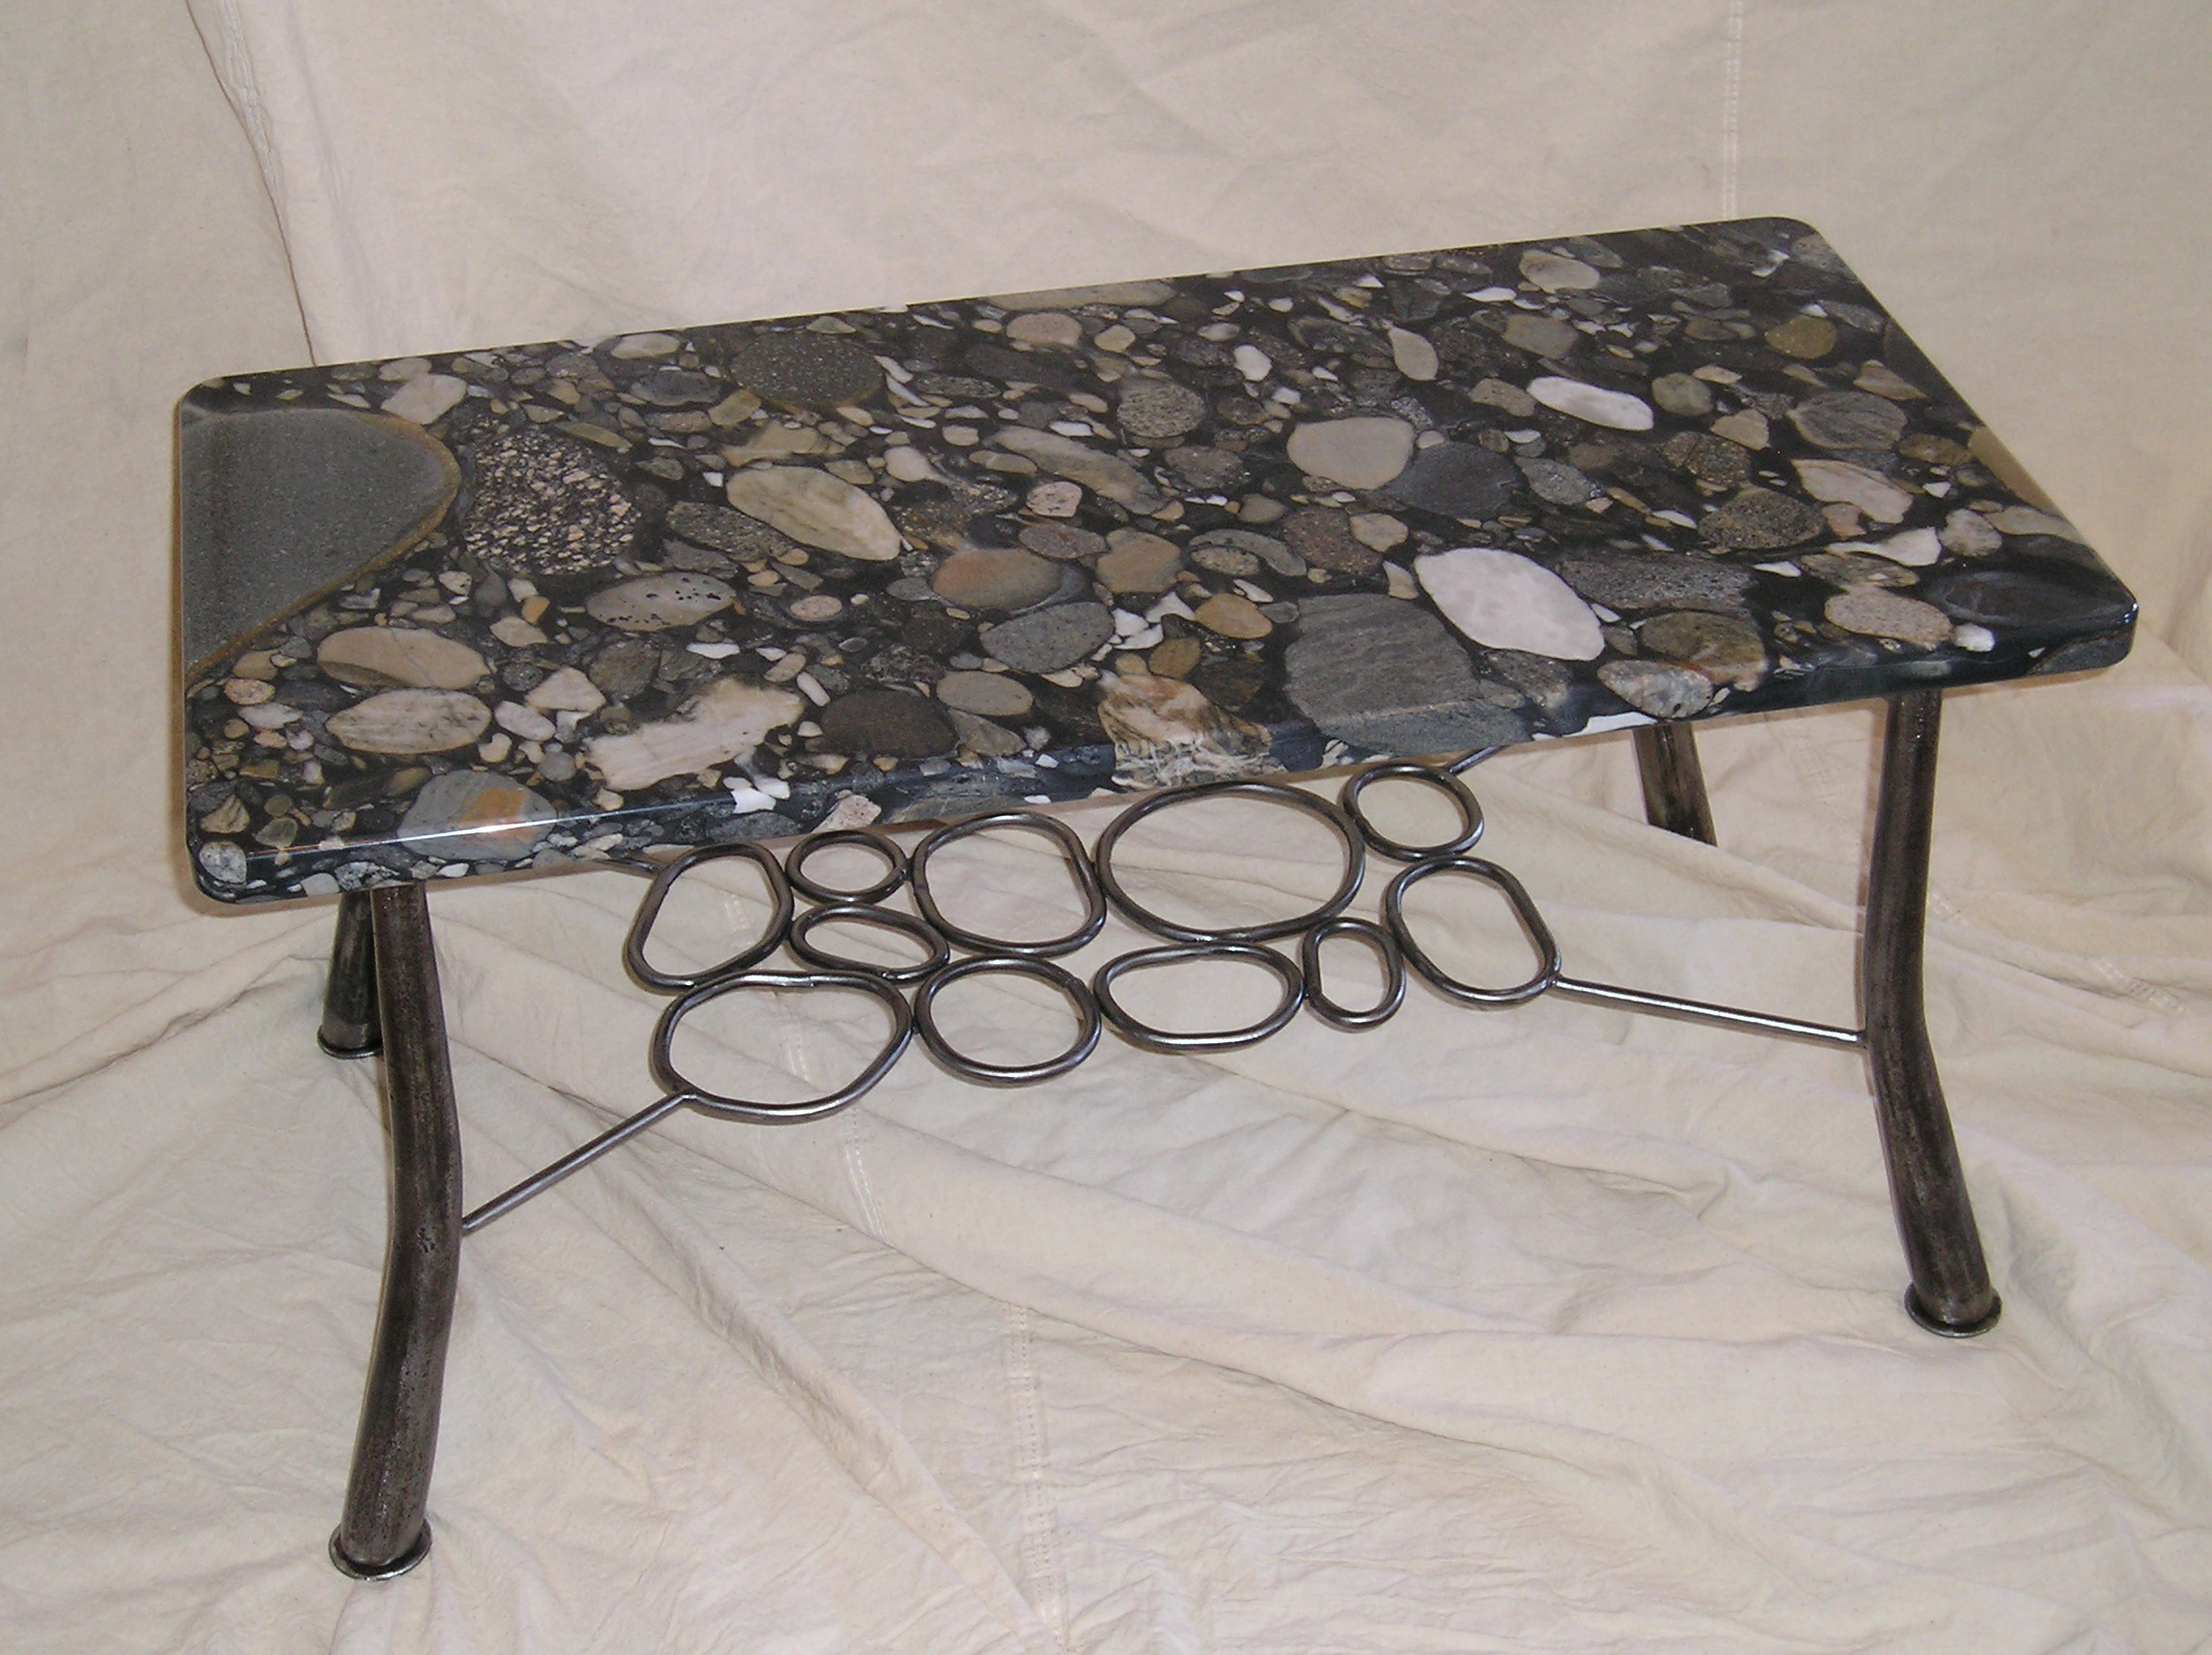 Marble top table with rock design below